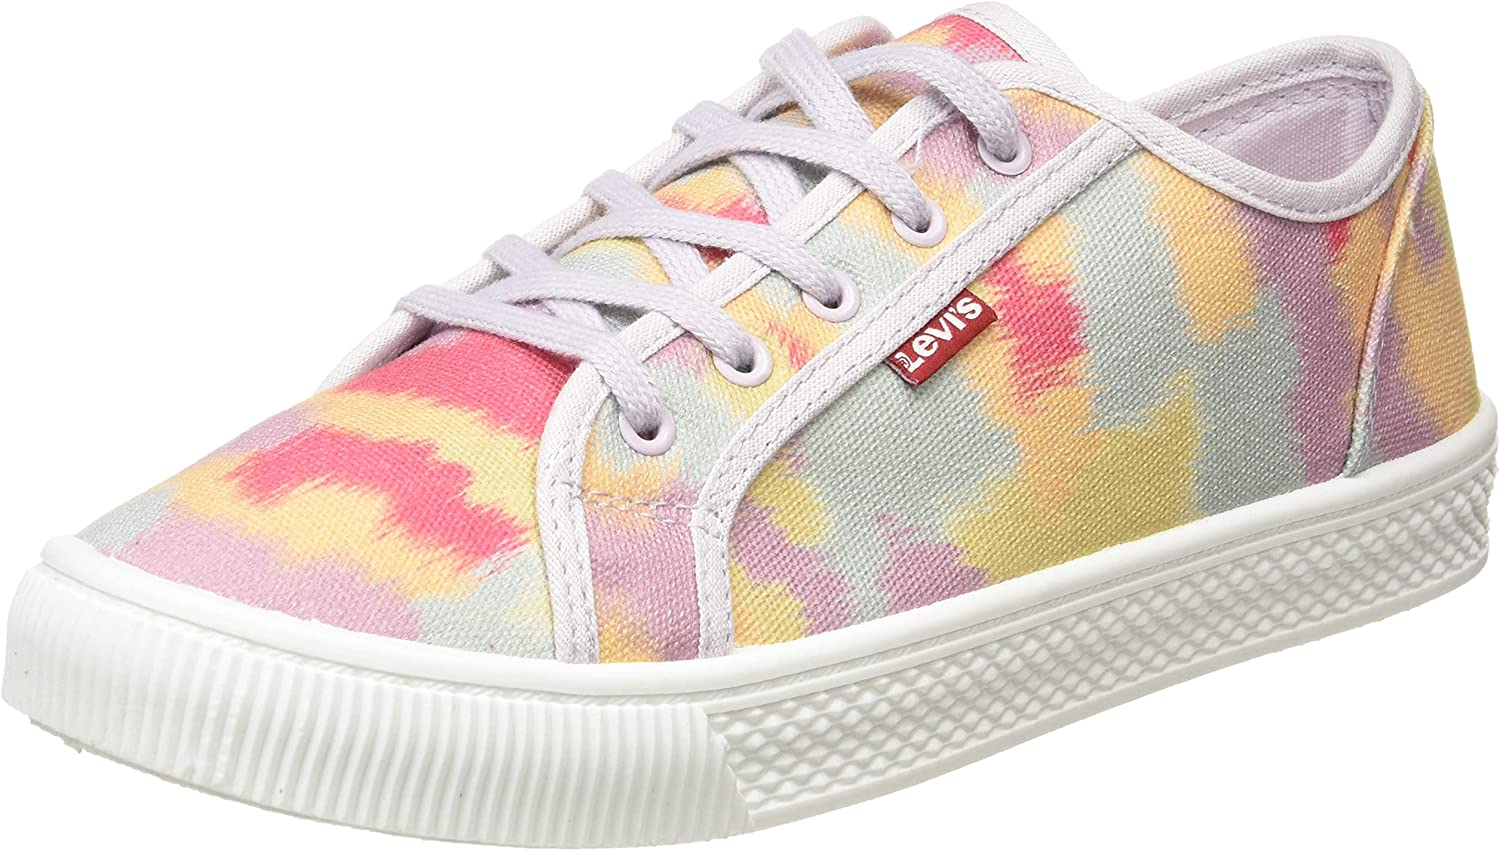 Levi's Women's Low-Top Max Arlington Mall 51% OFF Sneakers